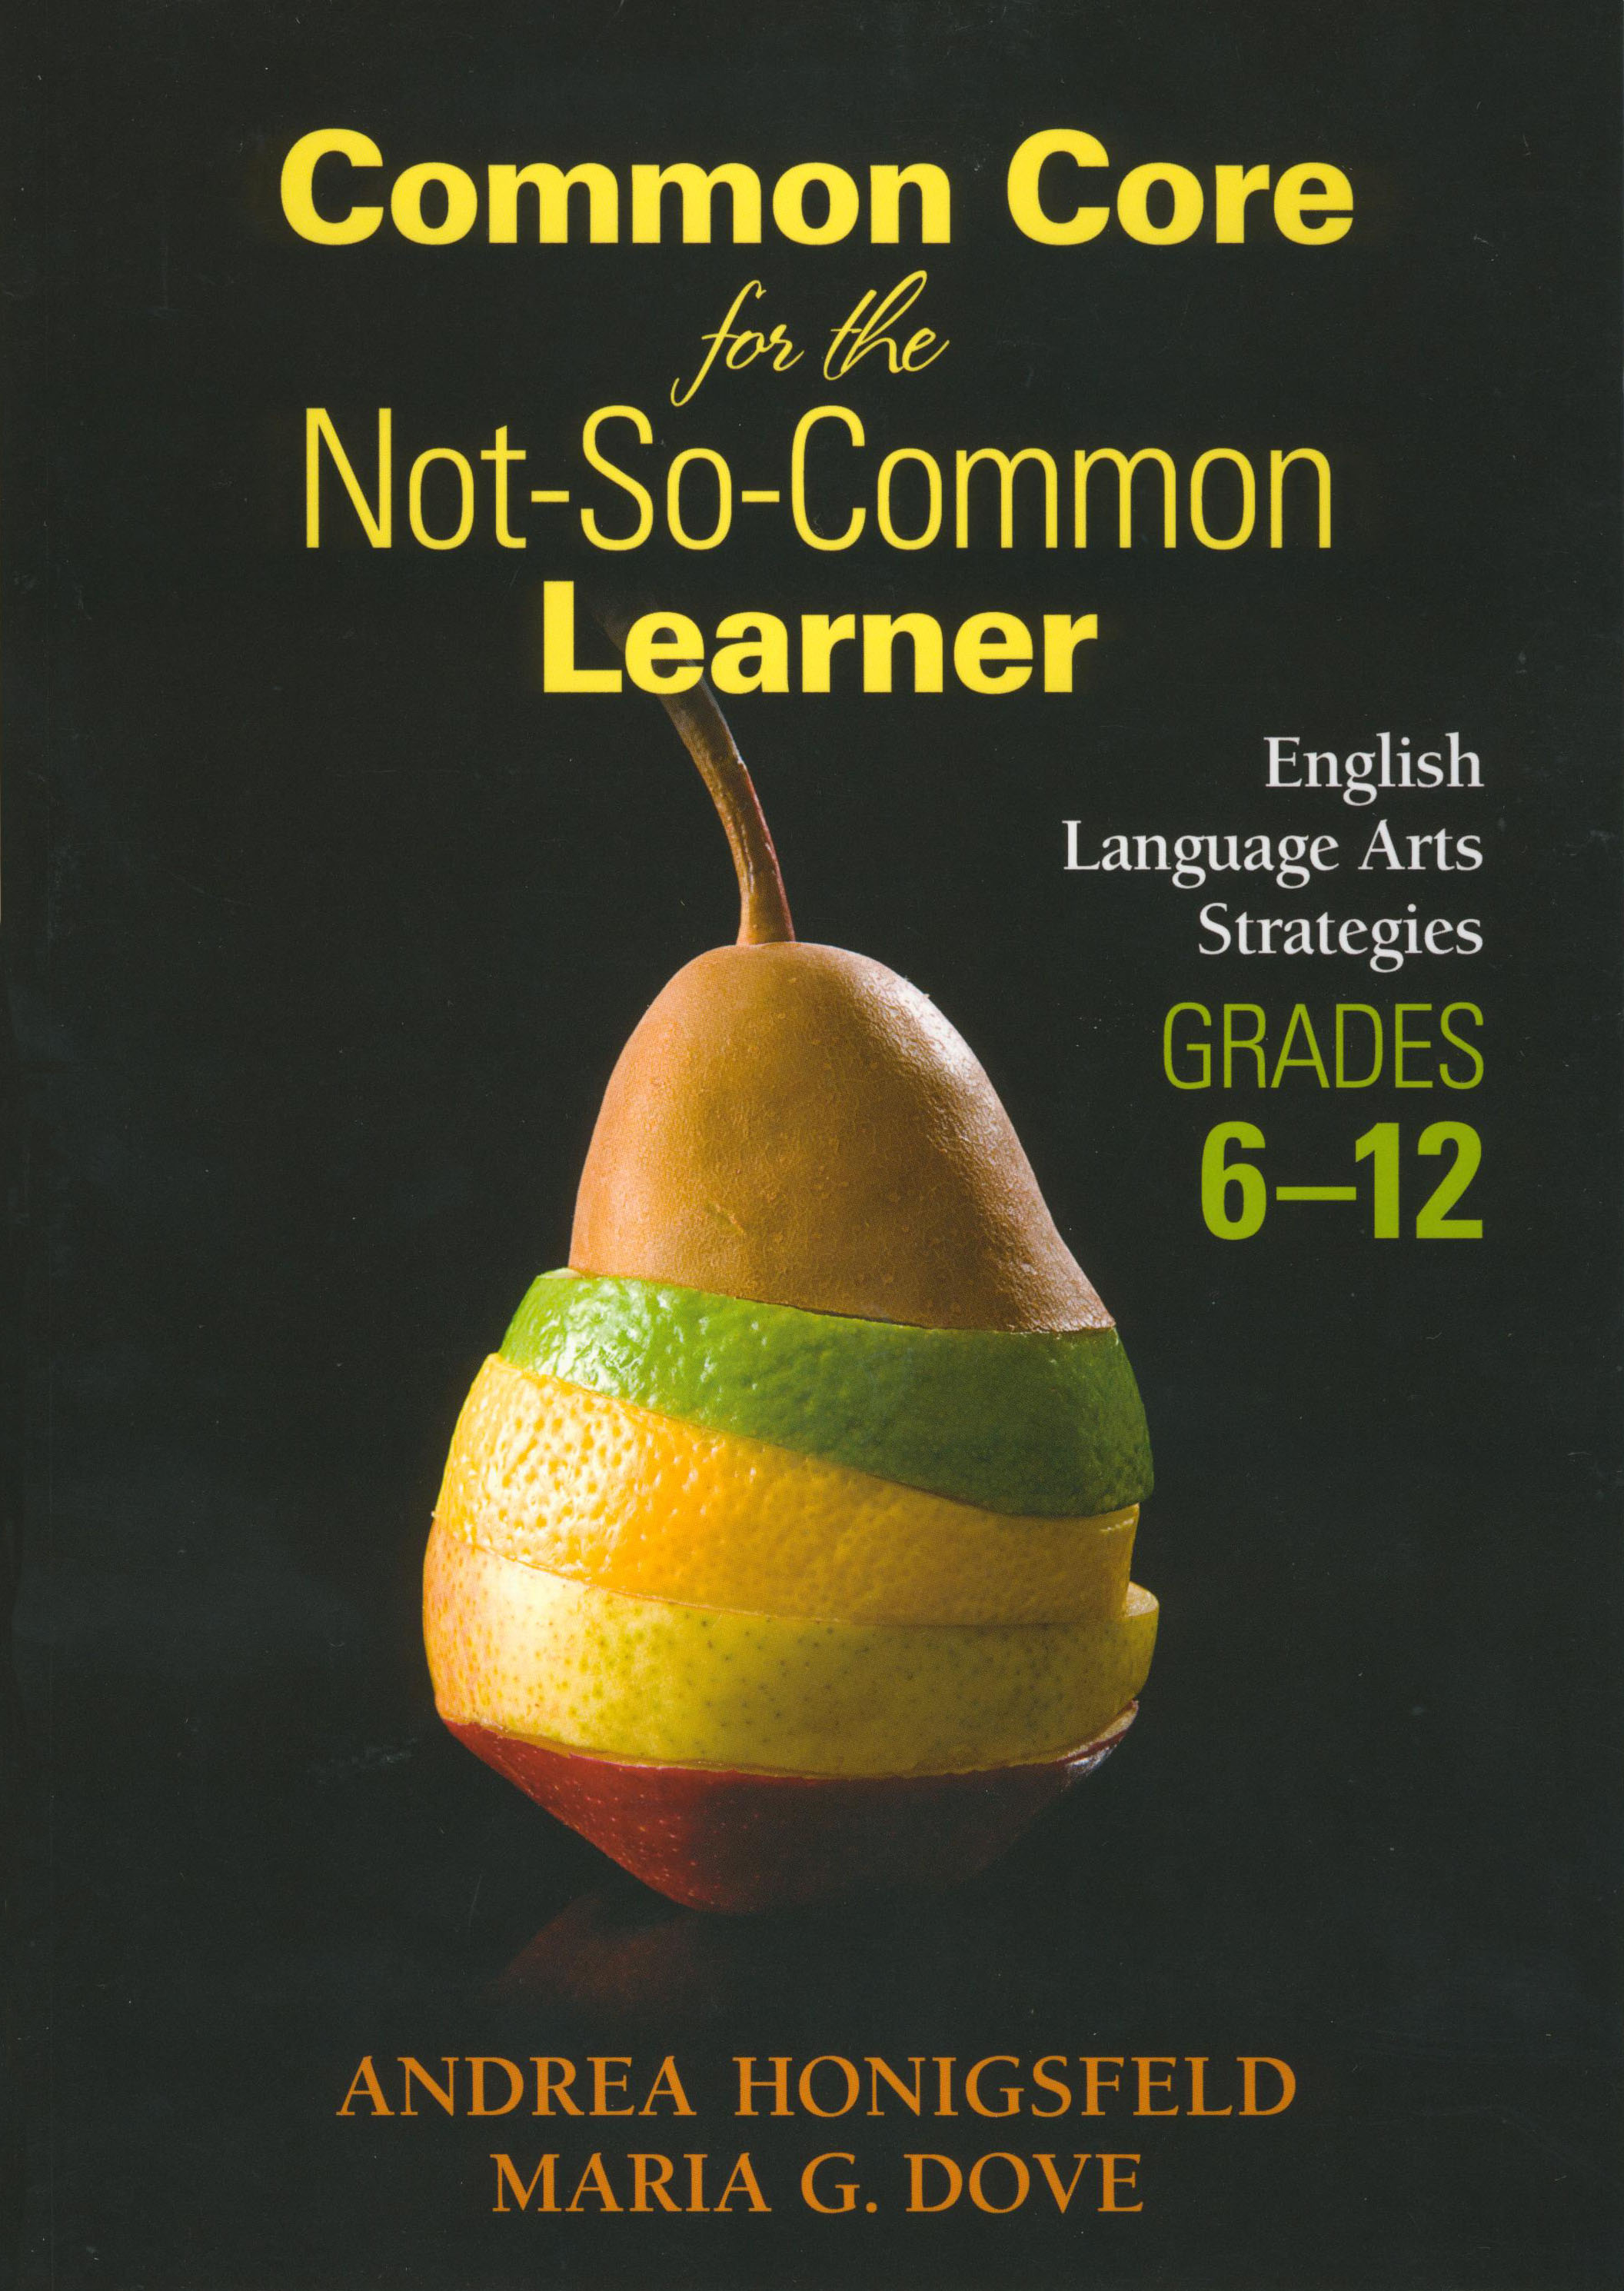 Common Core for the Not-So-Common Learner ~ Grades 6-12 Resource Book